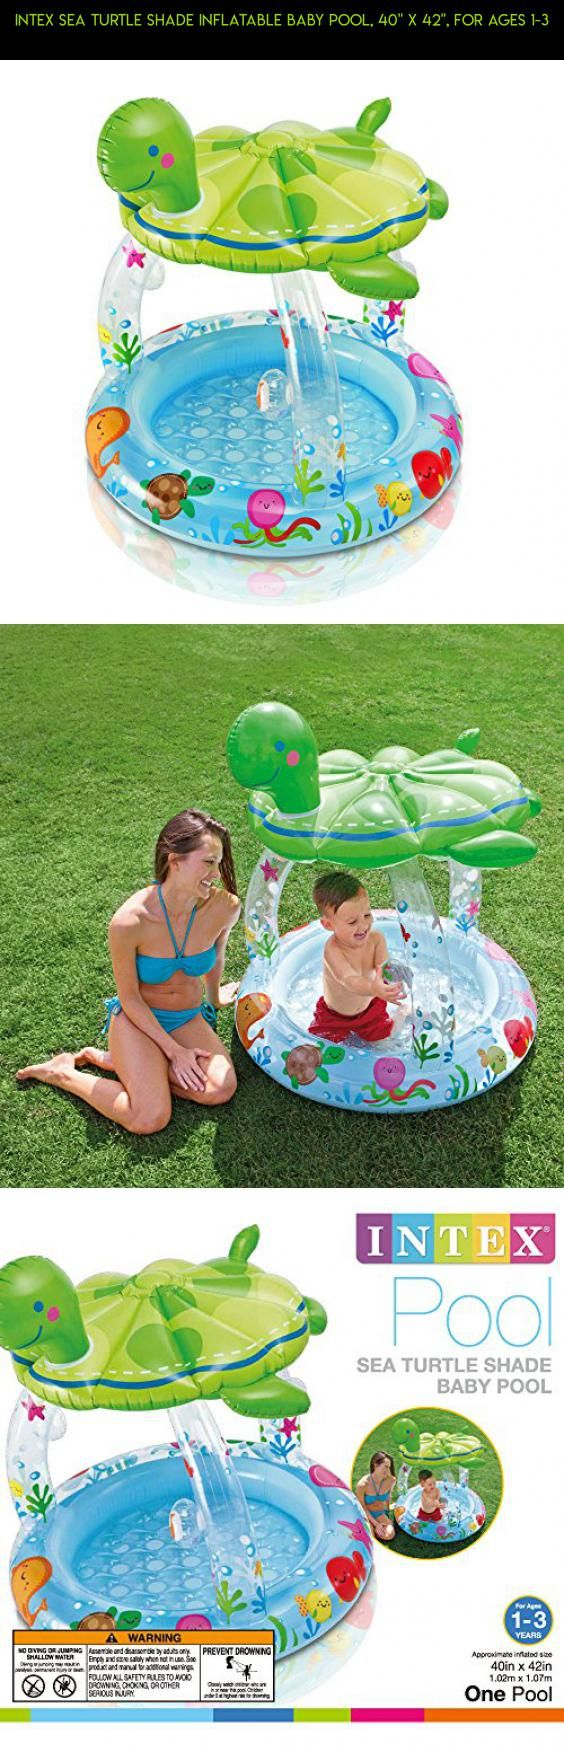 """Intex Sea Turtle Shade Inflatable Baby Pool, 40"""" X 42"""", for Ages 1-3 #parts #plans #baby #racing #shopping #inflatable #technology #products #camera #fpv #gadgets #pools #kit #drone #tech"""